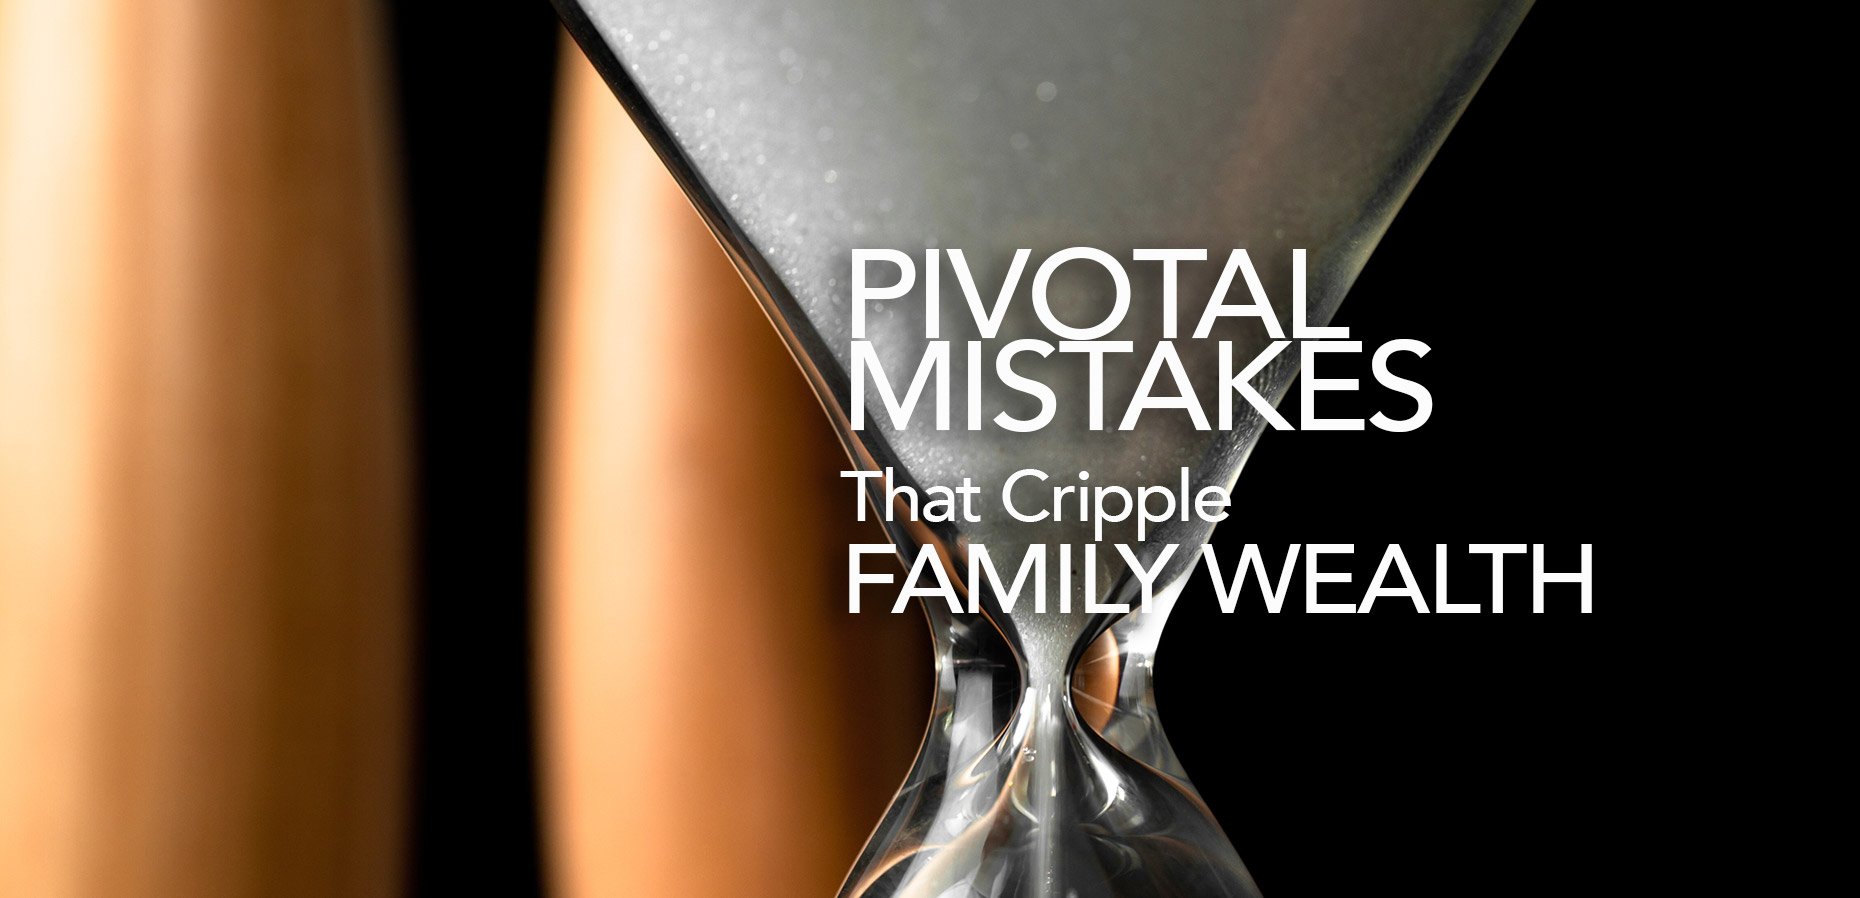 The Pivotal Mistakes That Cripple Family Wealth